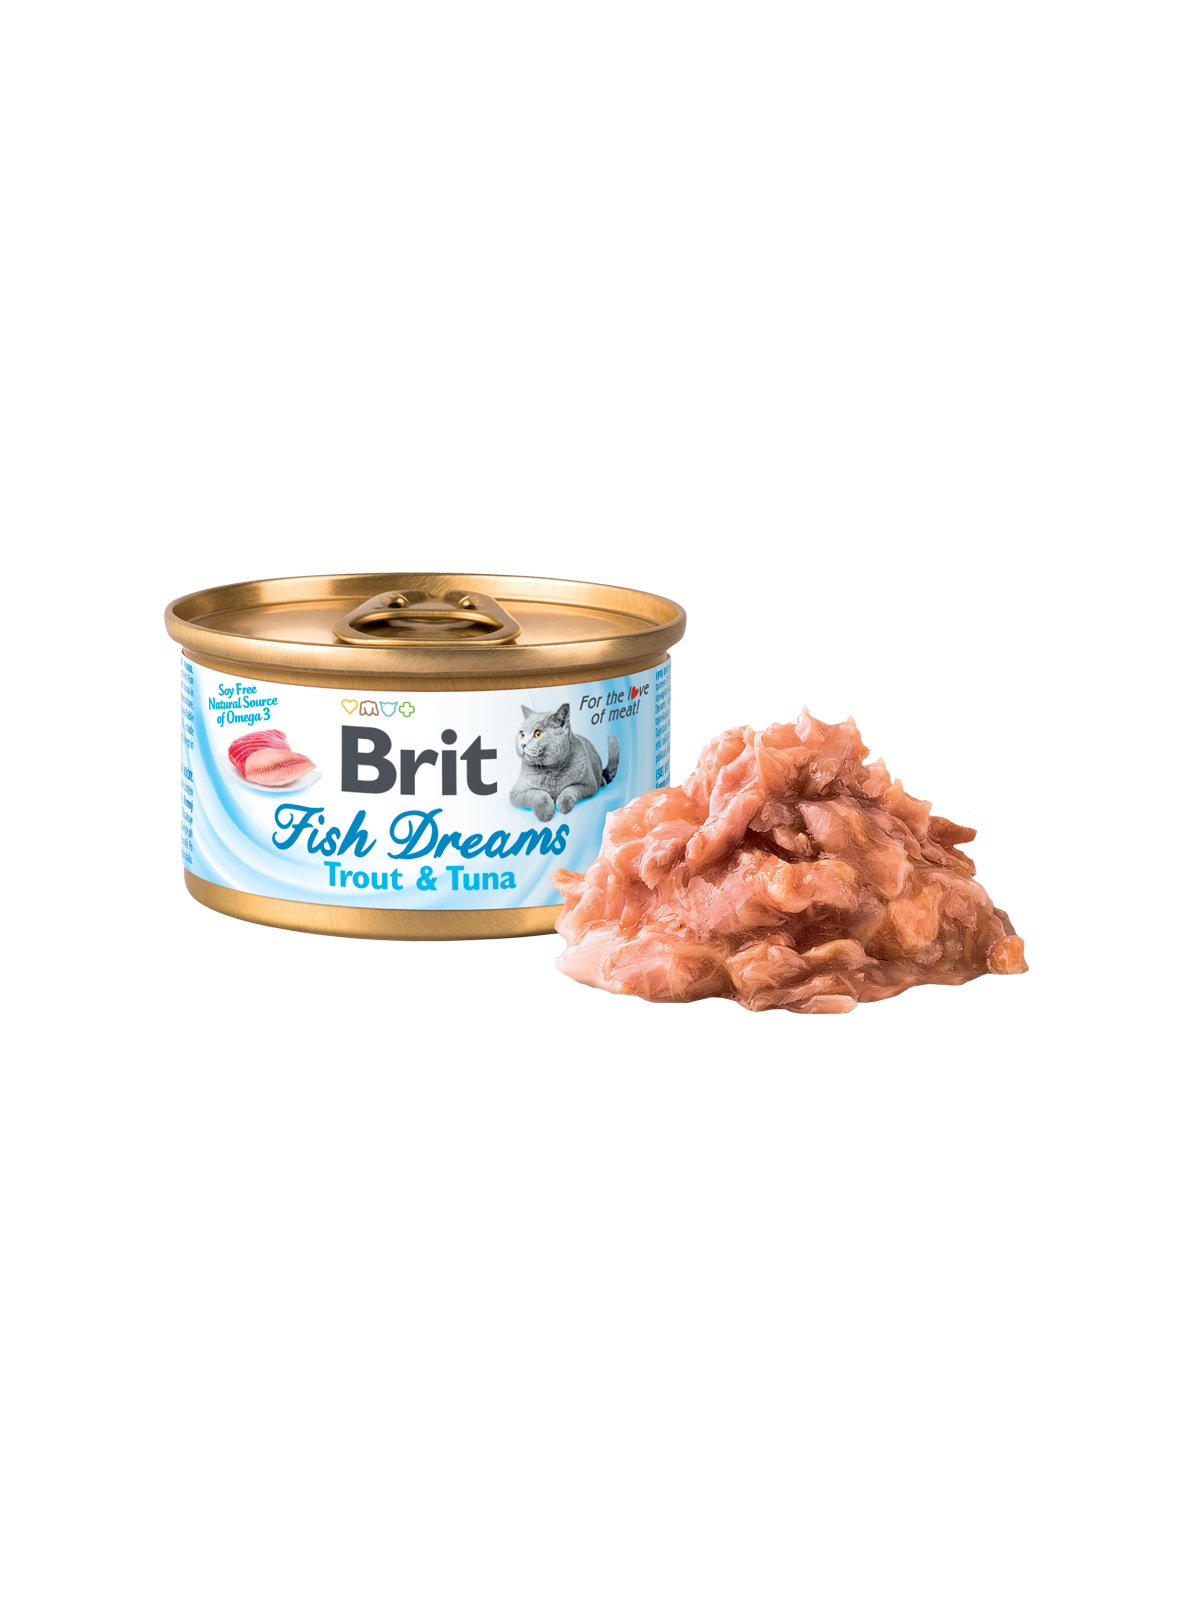 Brit Fish Dreams Trout & Tuna 80g